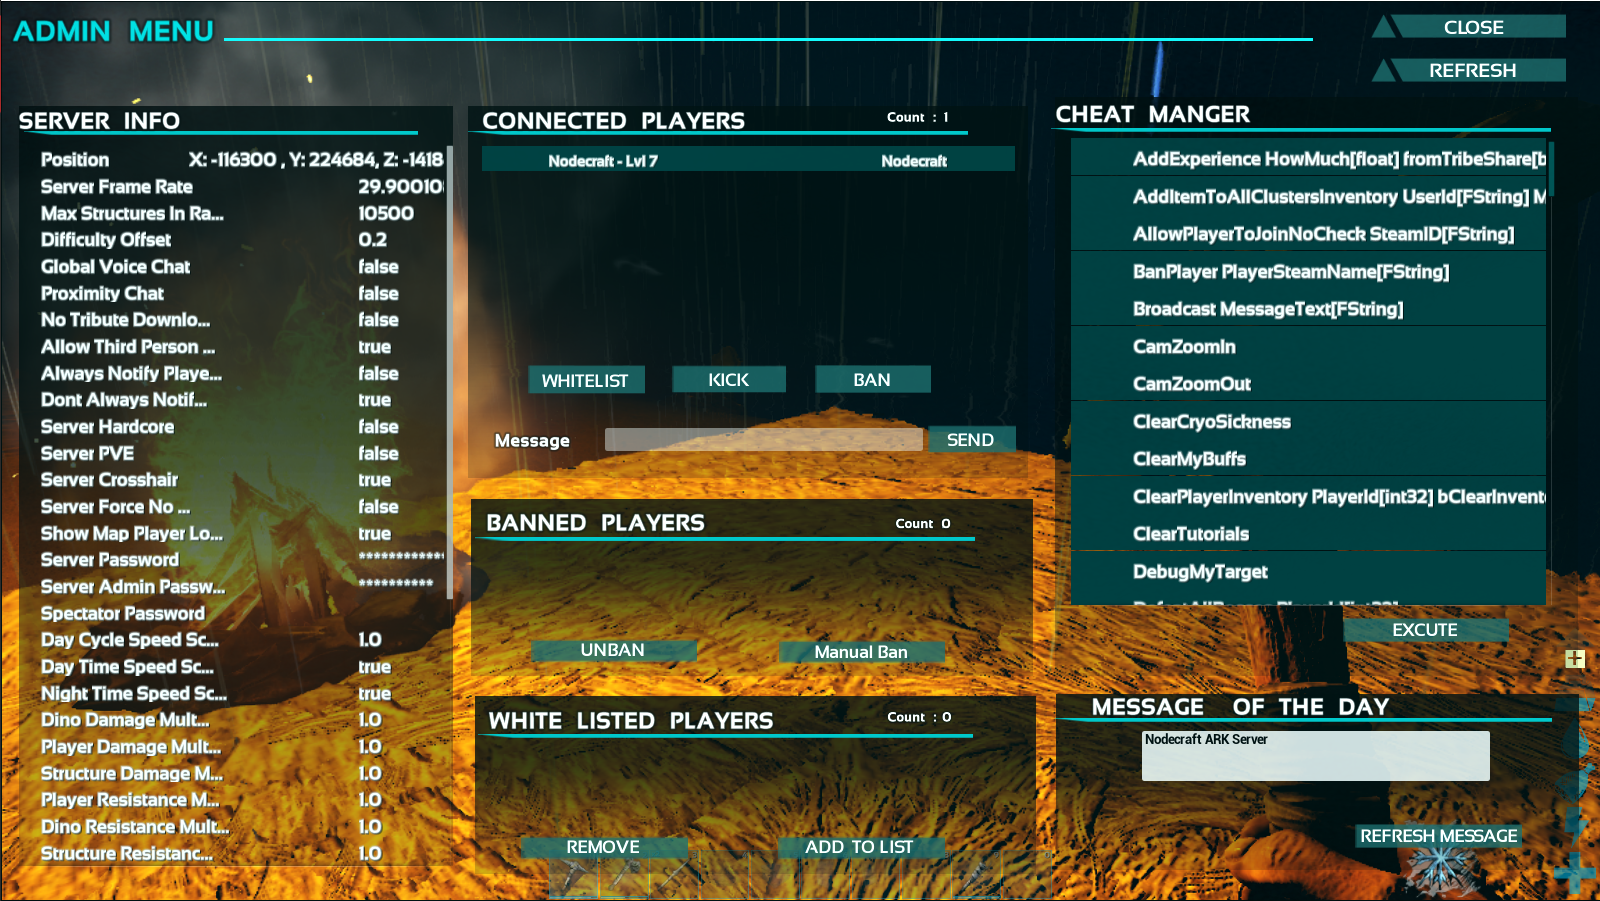 A view of the showmyadminmanager GUI for ARK